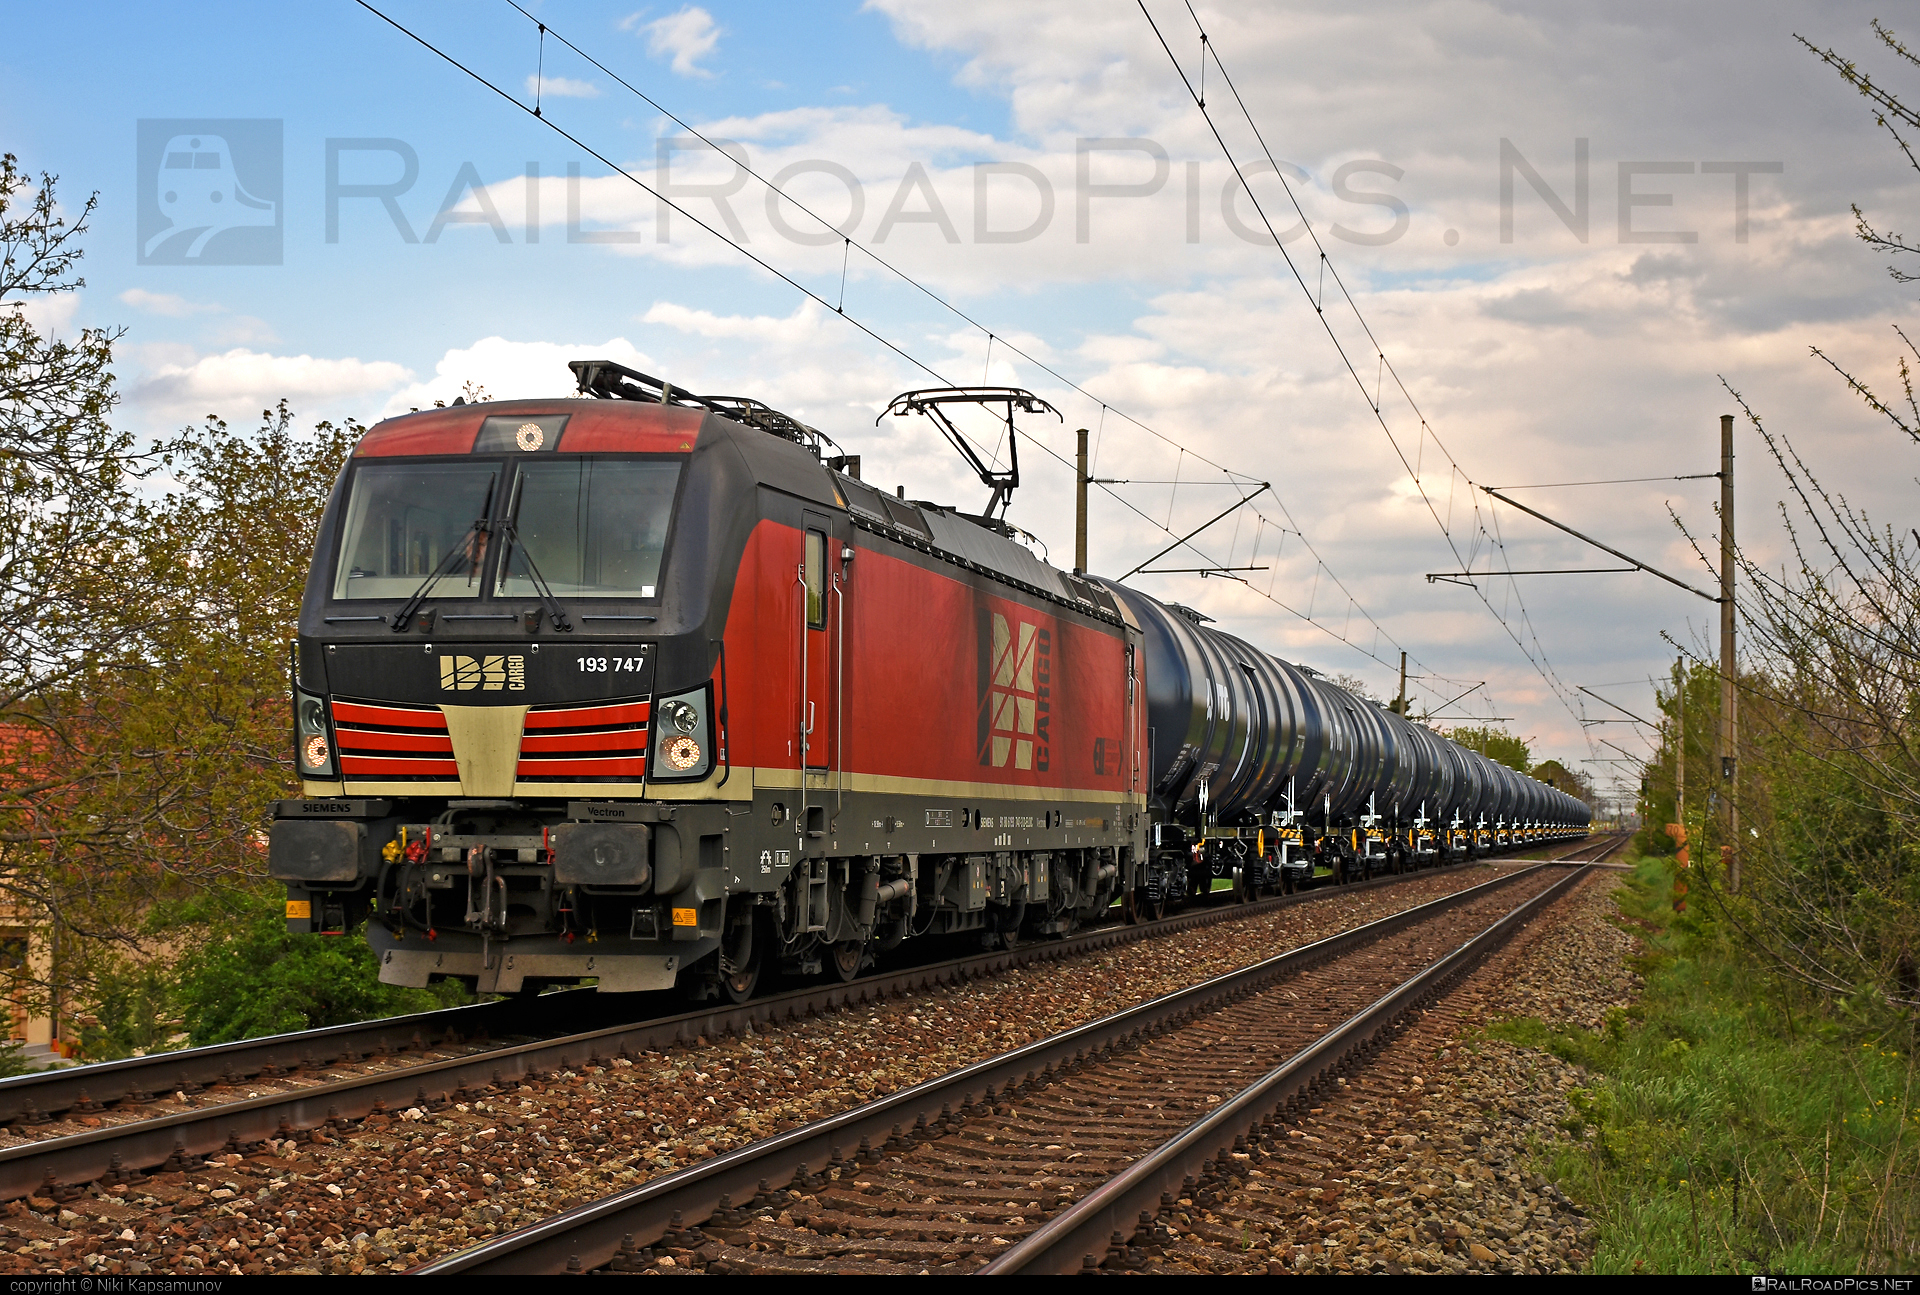 Siemens Vectron MS - 193 747 operated by IDS CARGO a. s. #ell #ellgermany #eloc #europeanlocomotiveleasing #idsc #idscargo #kesselwagen #siemens #siemensvectron #siemensvectronms #tankwagon #vectron #vectronms